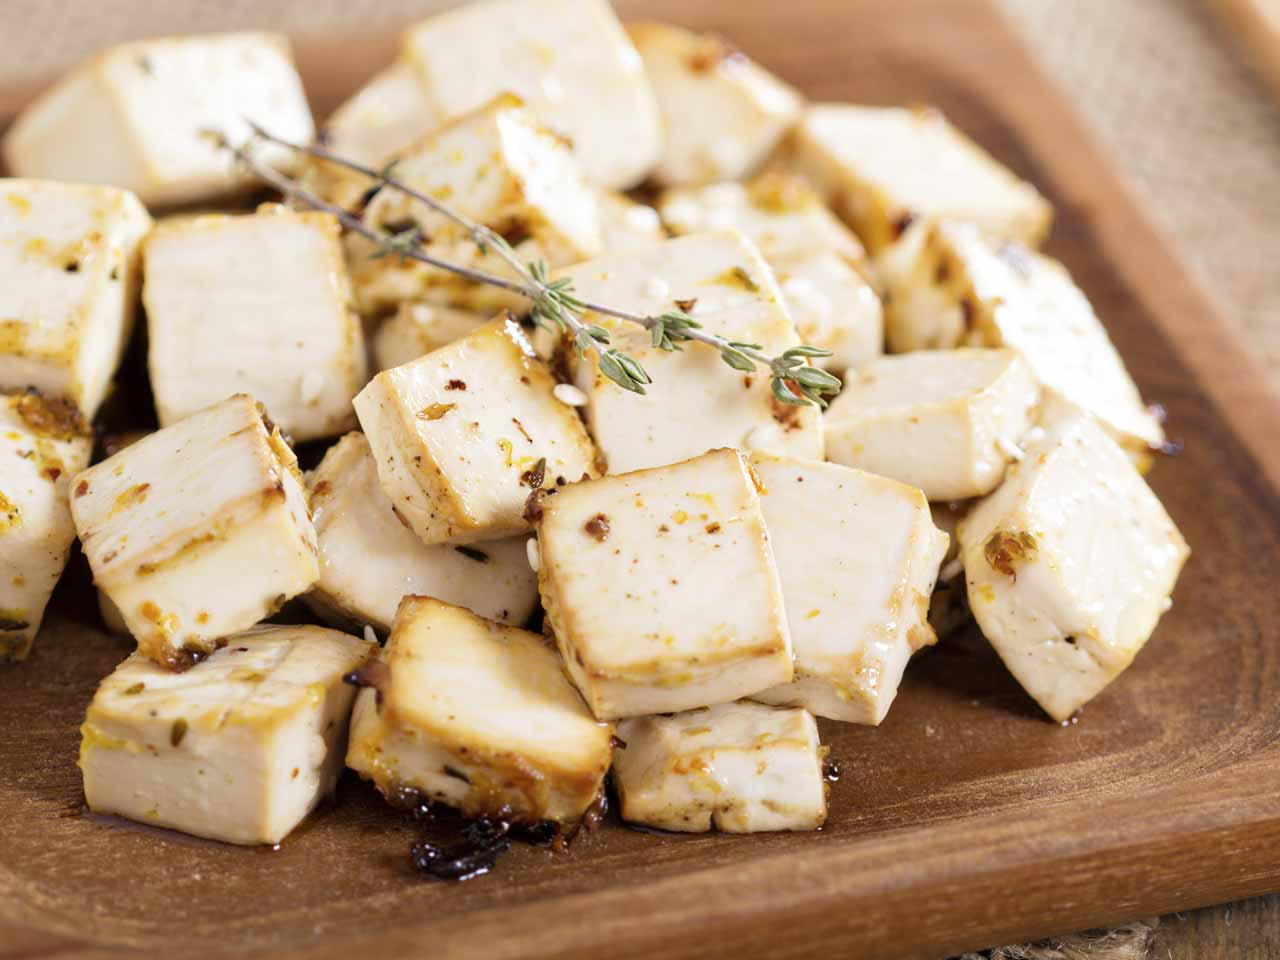 Add tofu to your diet